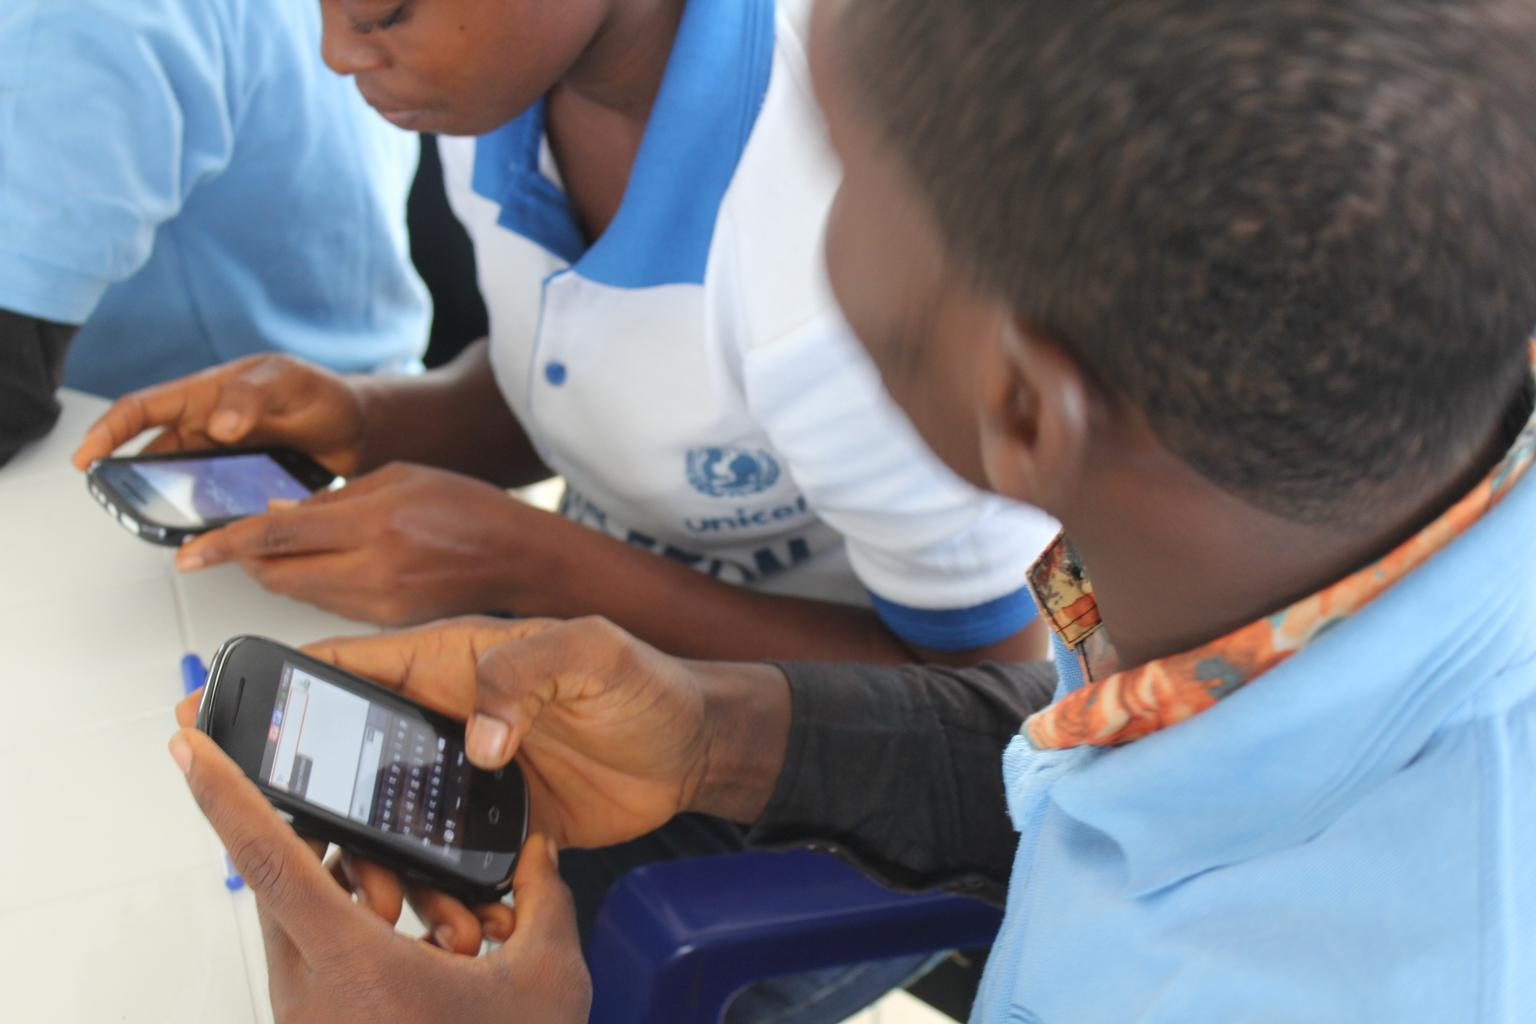 n Liberia, UNICEF-supported social mobilizers from the group A-LIFE, learn to record survey data using their mobile phones.